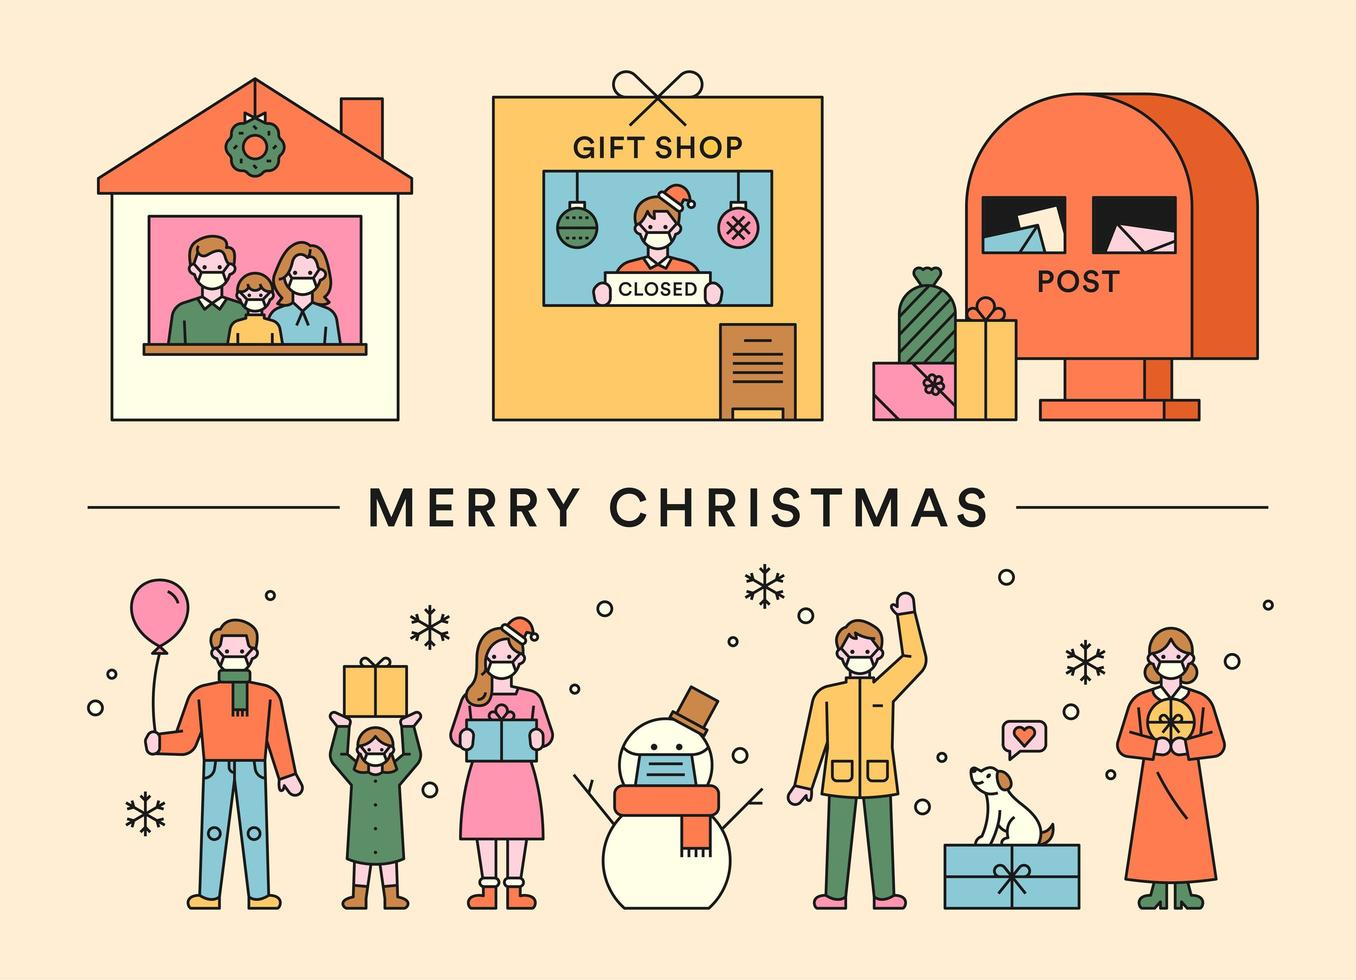 Merry Christmas Gift Scenes and People vector